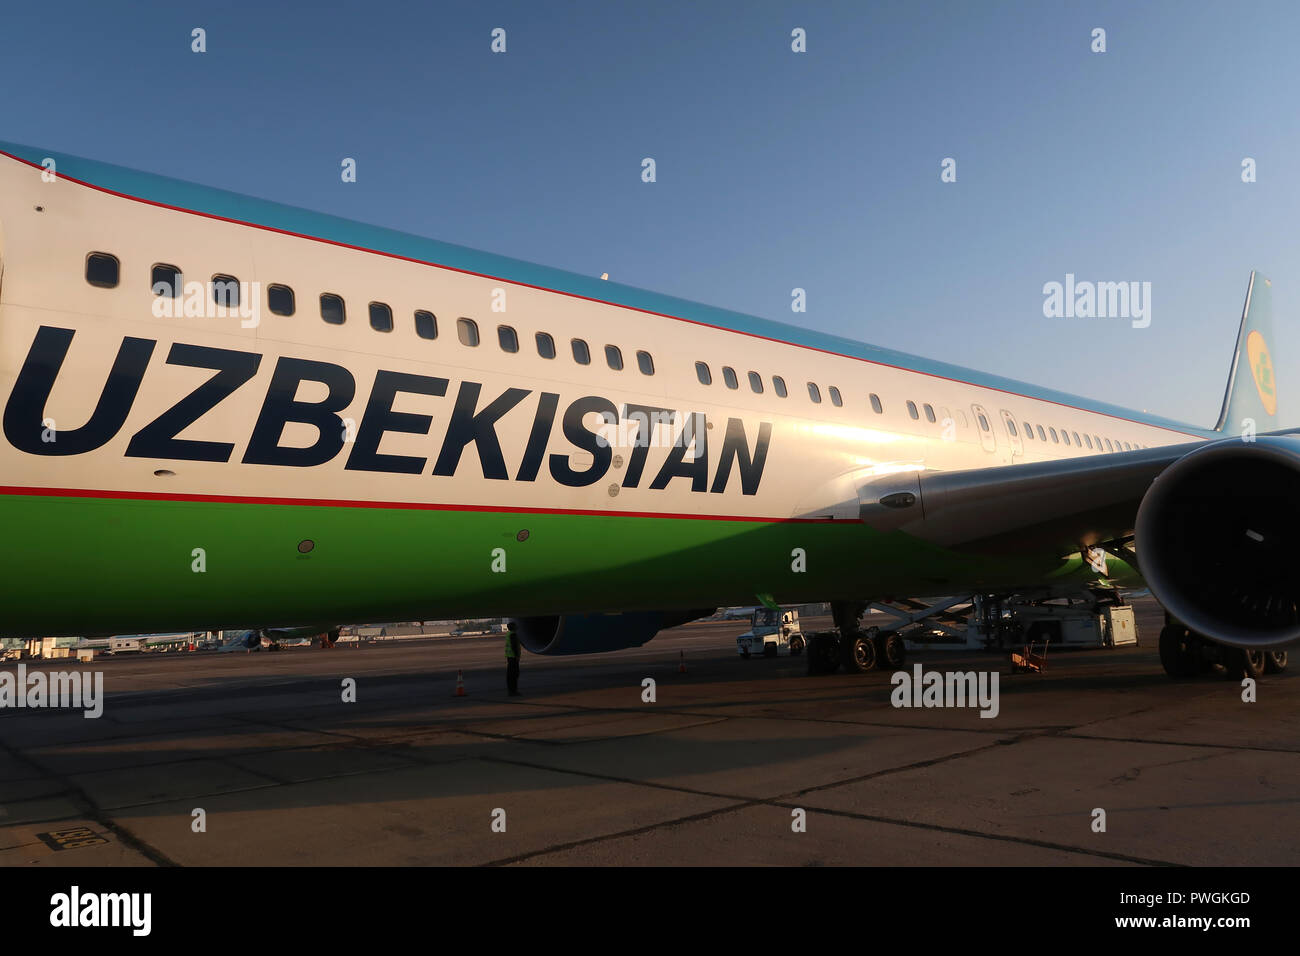 An airplane of National Air Company Uzbekistan Airways stand on the tarmac at Tashkent International Airport Uzbekistan - Stock Image